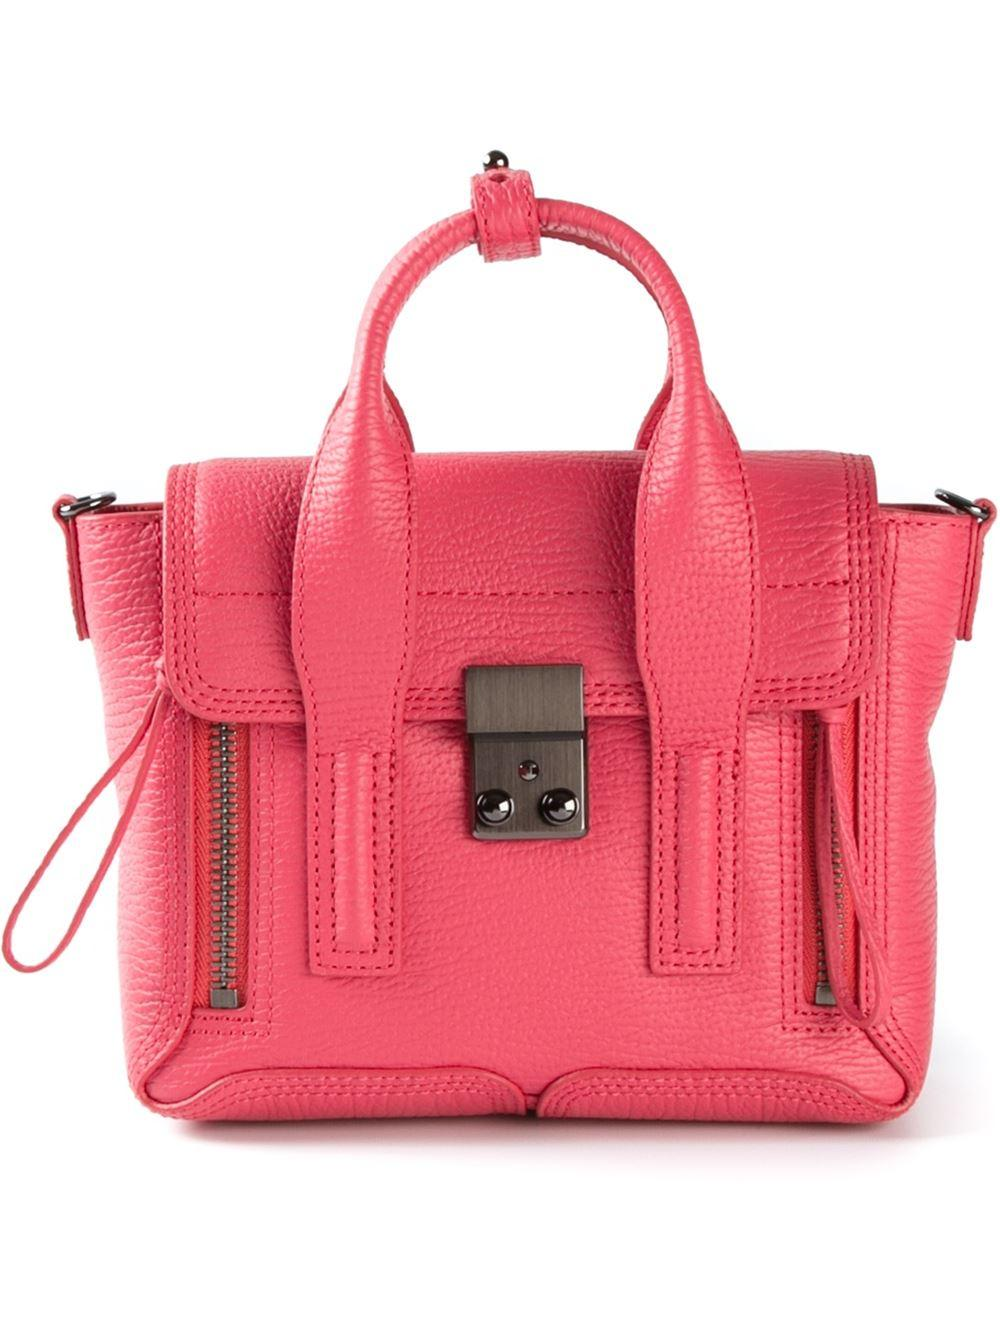 3.1 PHILLIP LIM  small 'Pashli' tote On Sale @ Farfetch